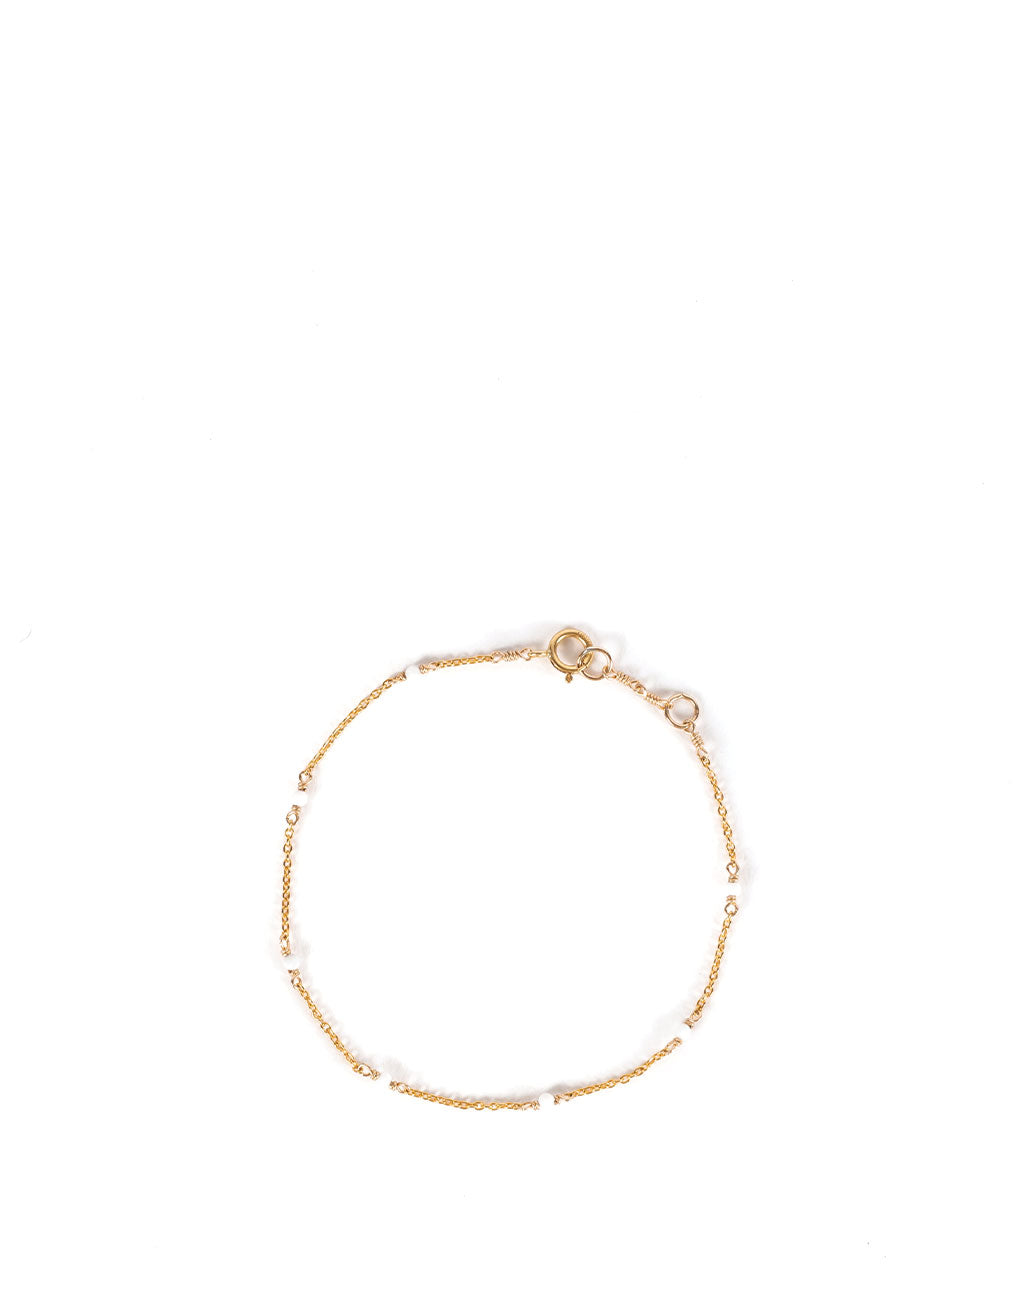 Dainty Gemstone Bracelet - White | The Little Market